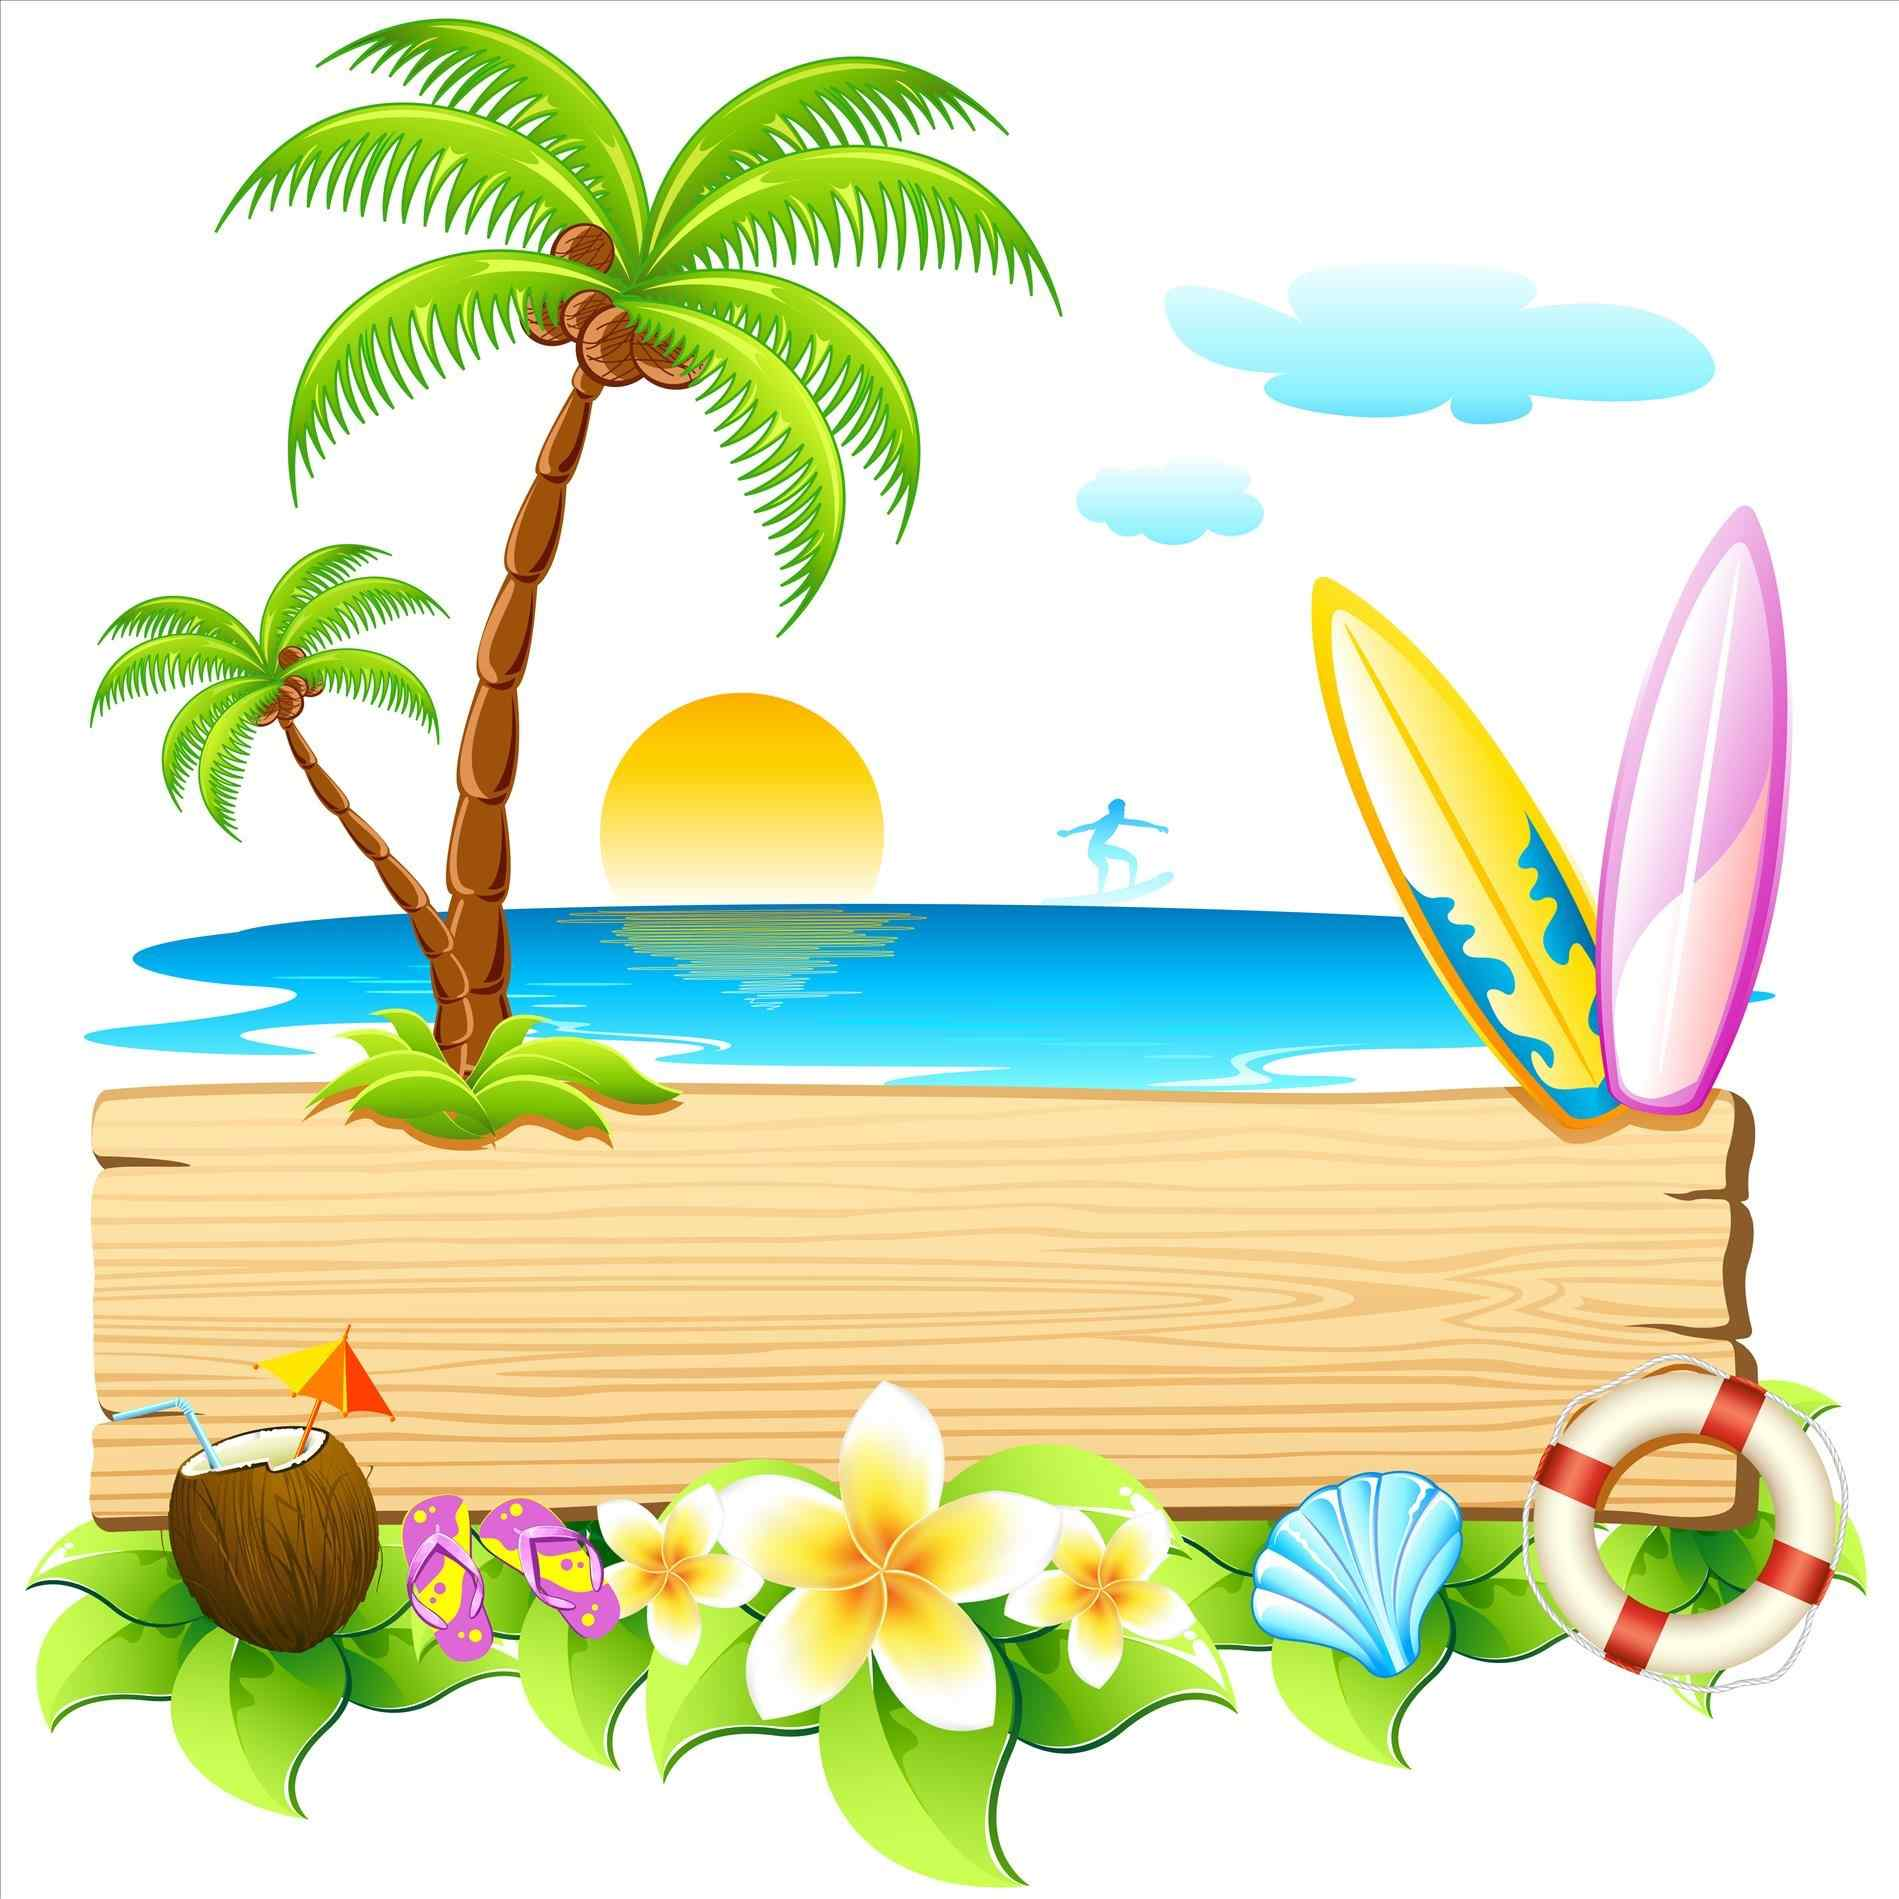 Tropical vacation clipart picture free download Beach Vacation Clipart | Free download best Beach Vacation ... picture free download